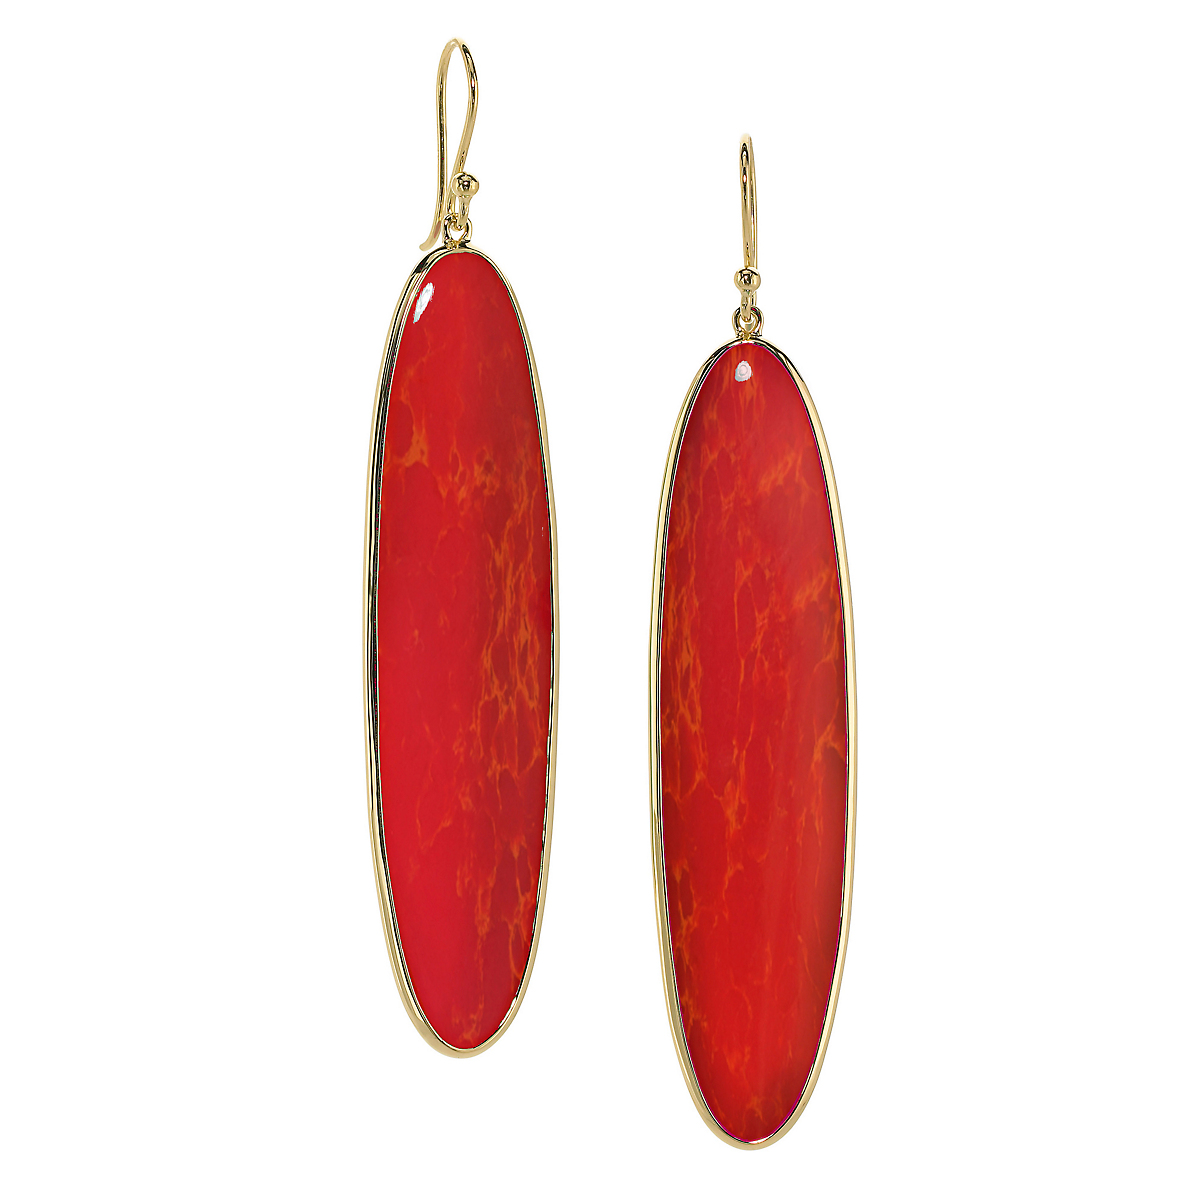 Elizabeth Showers Orange Coral Long Oval Earrings